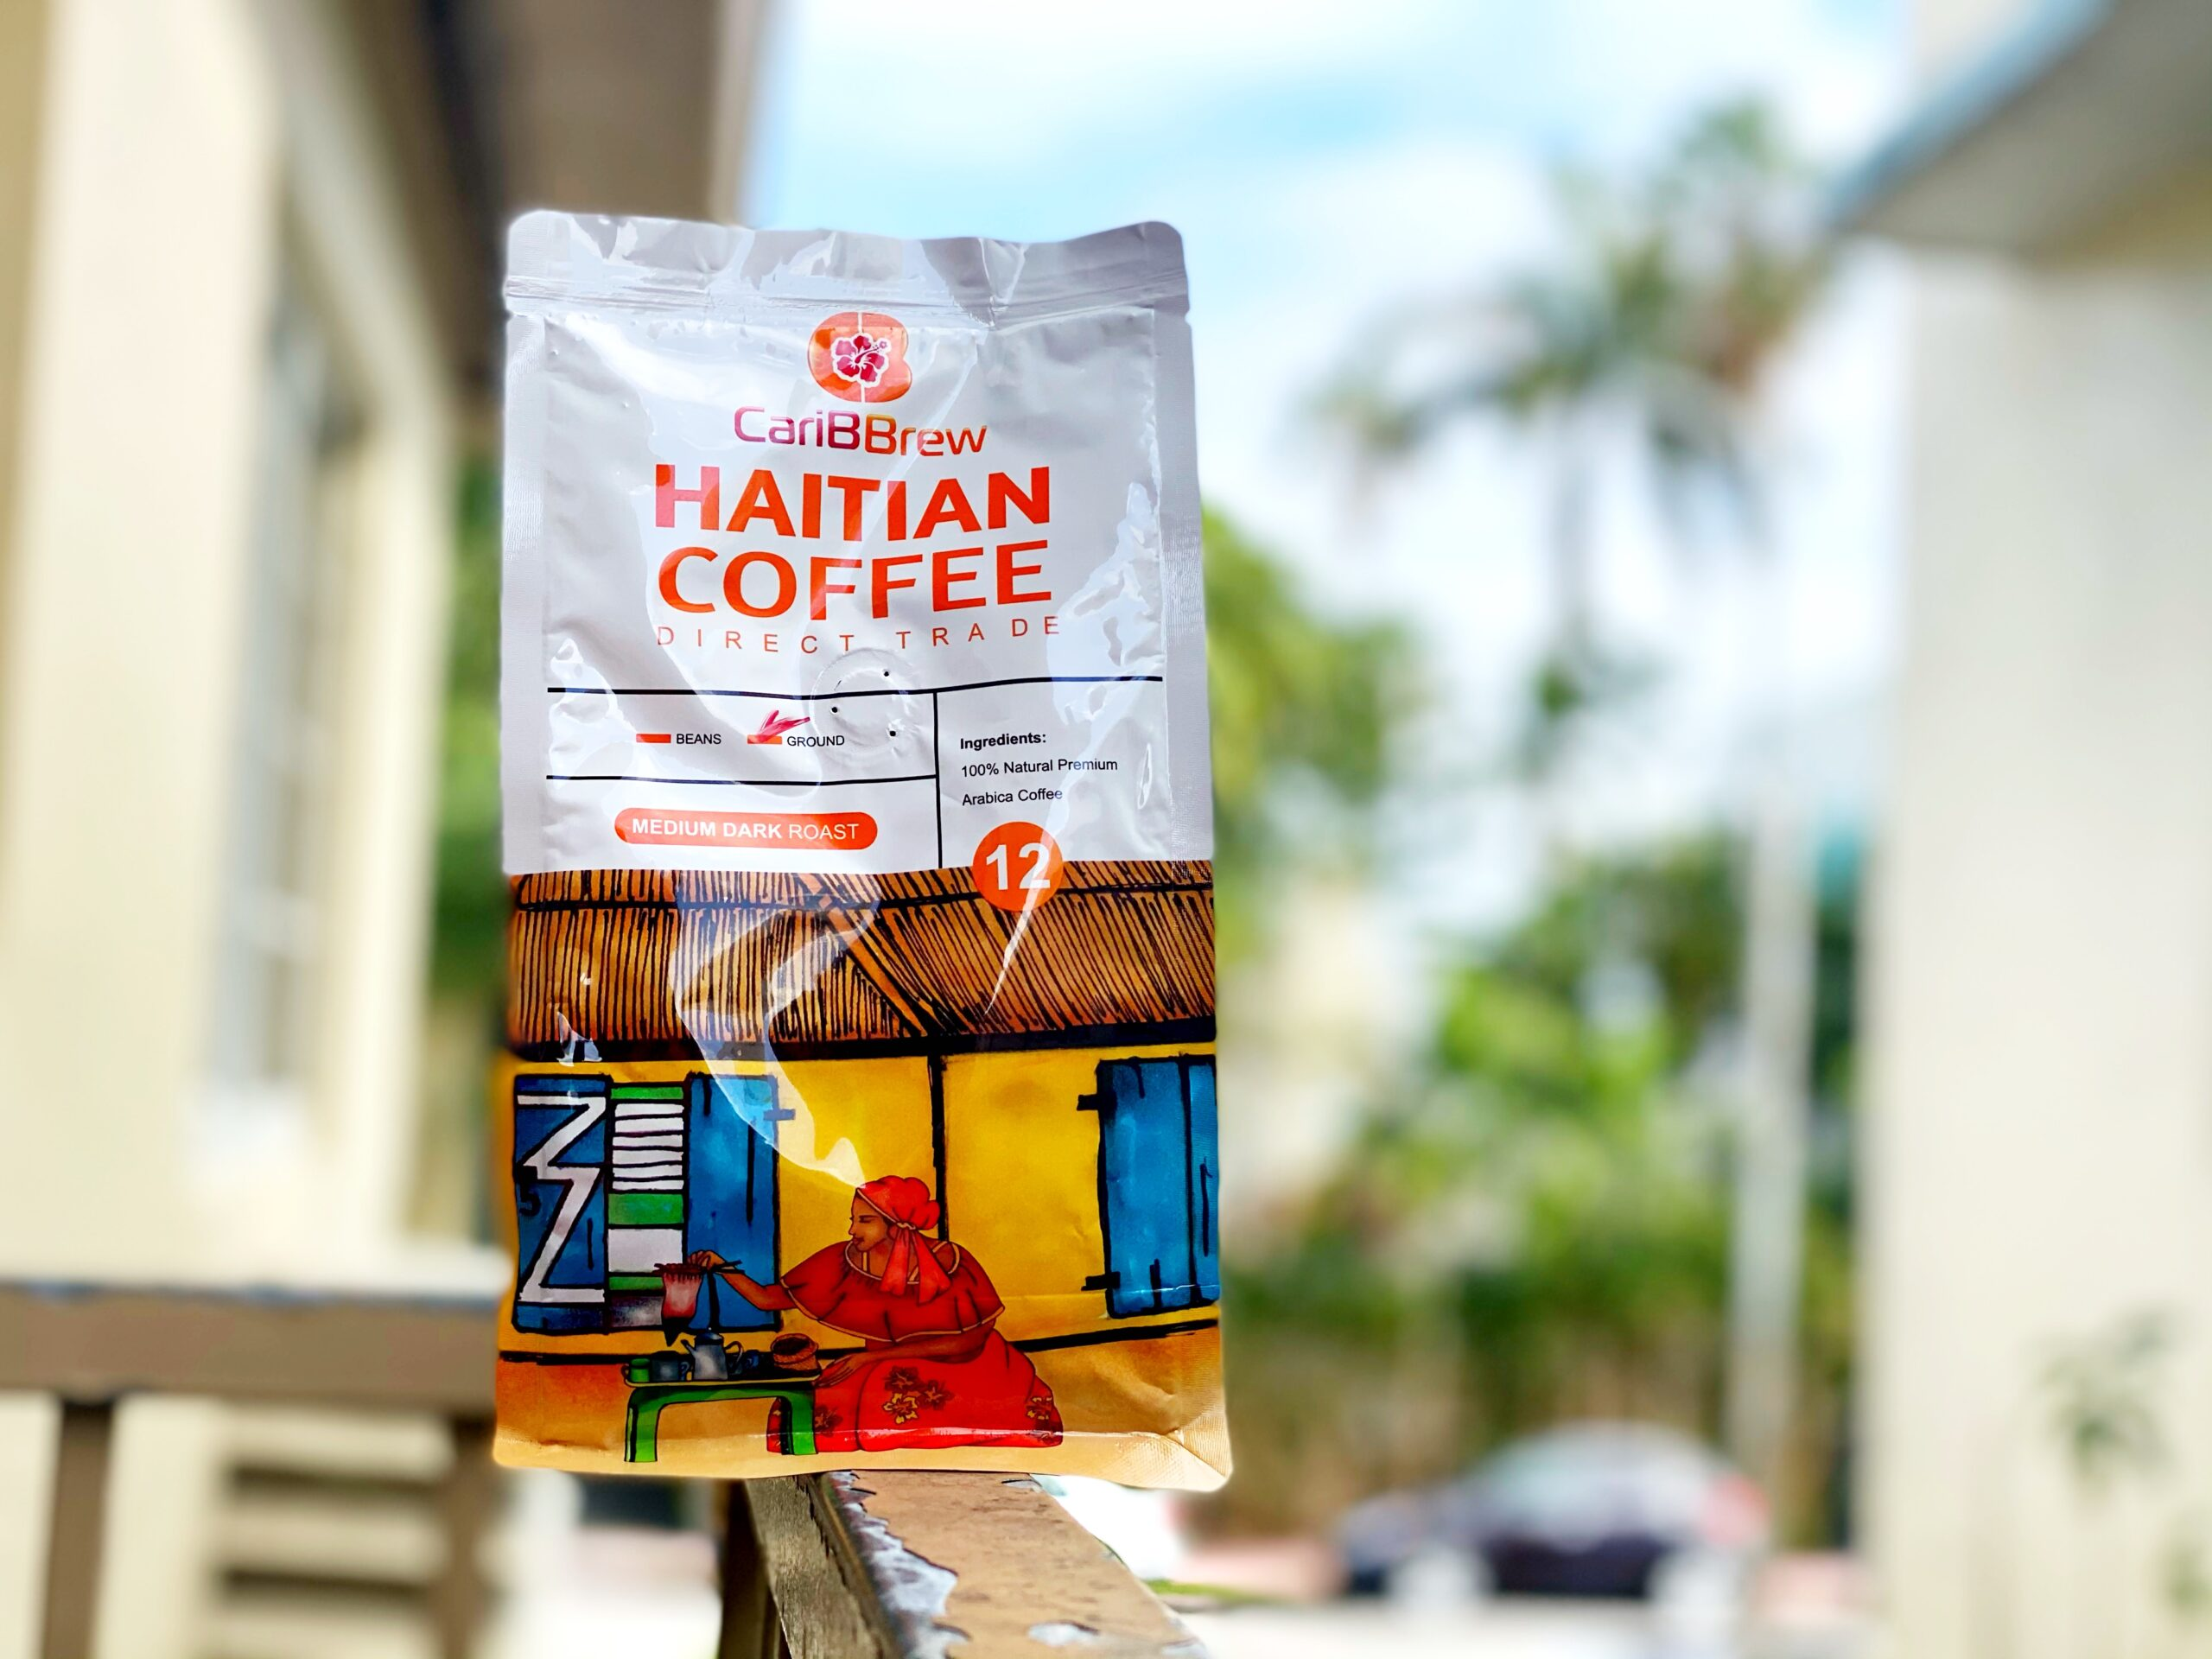 coffee from great coffee brands